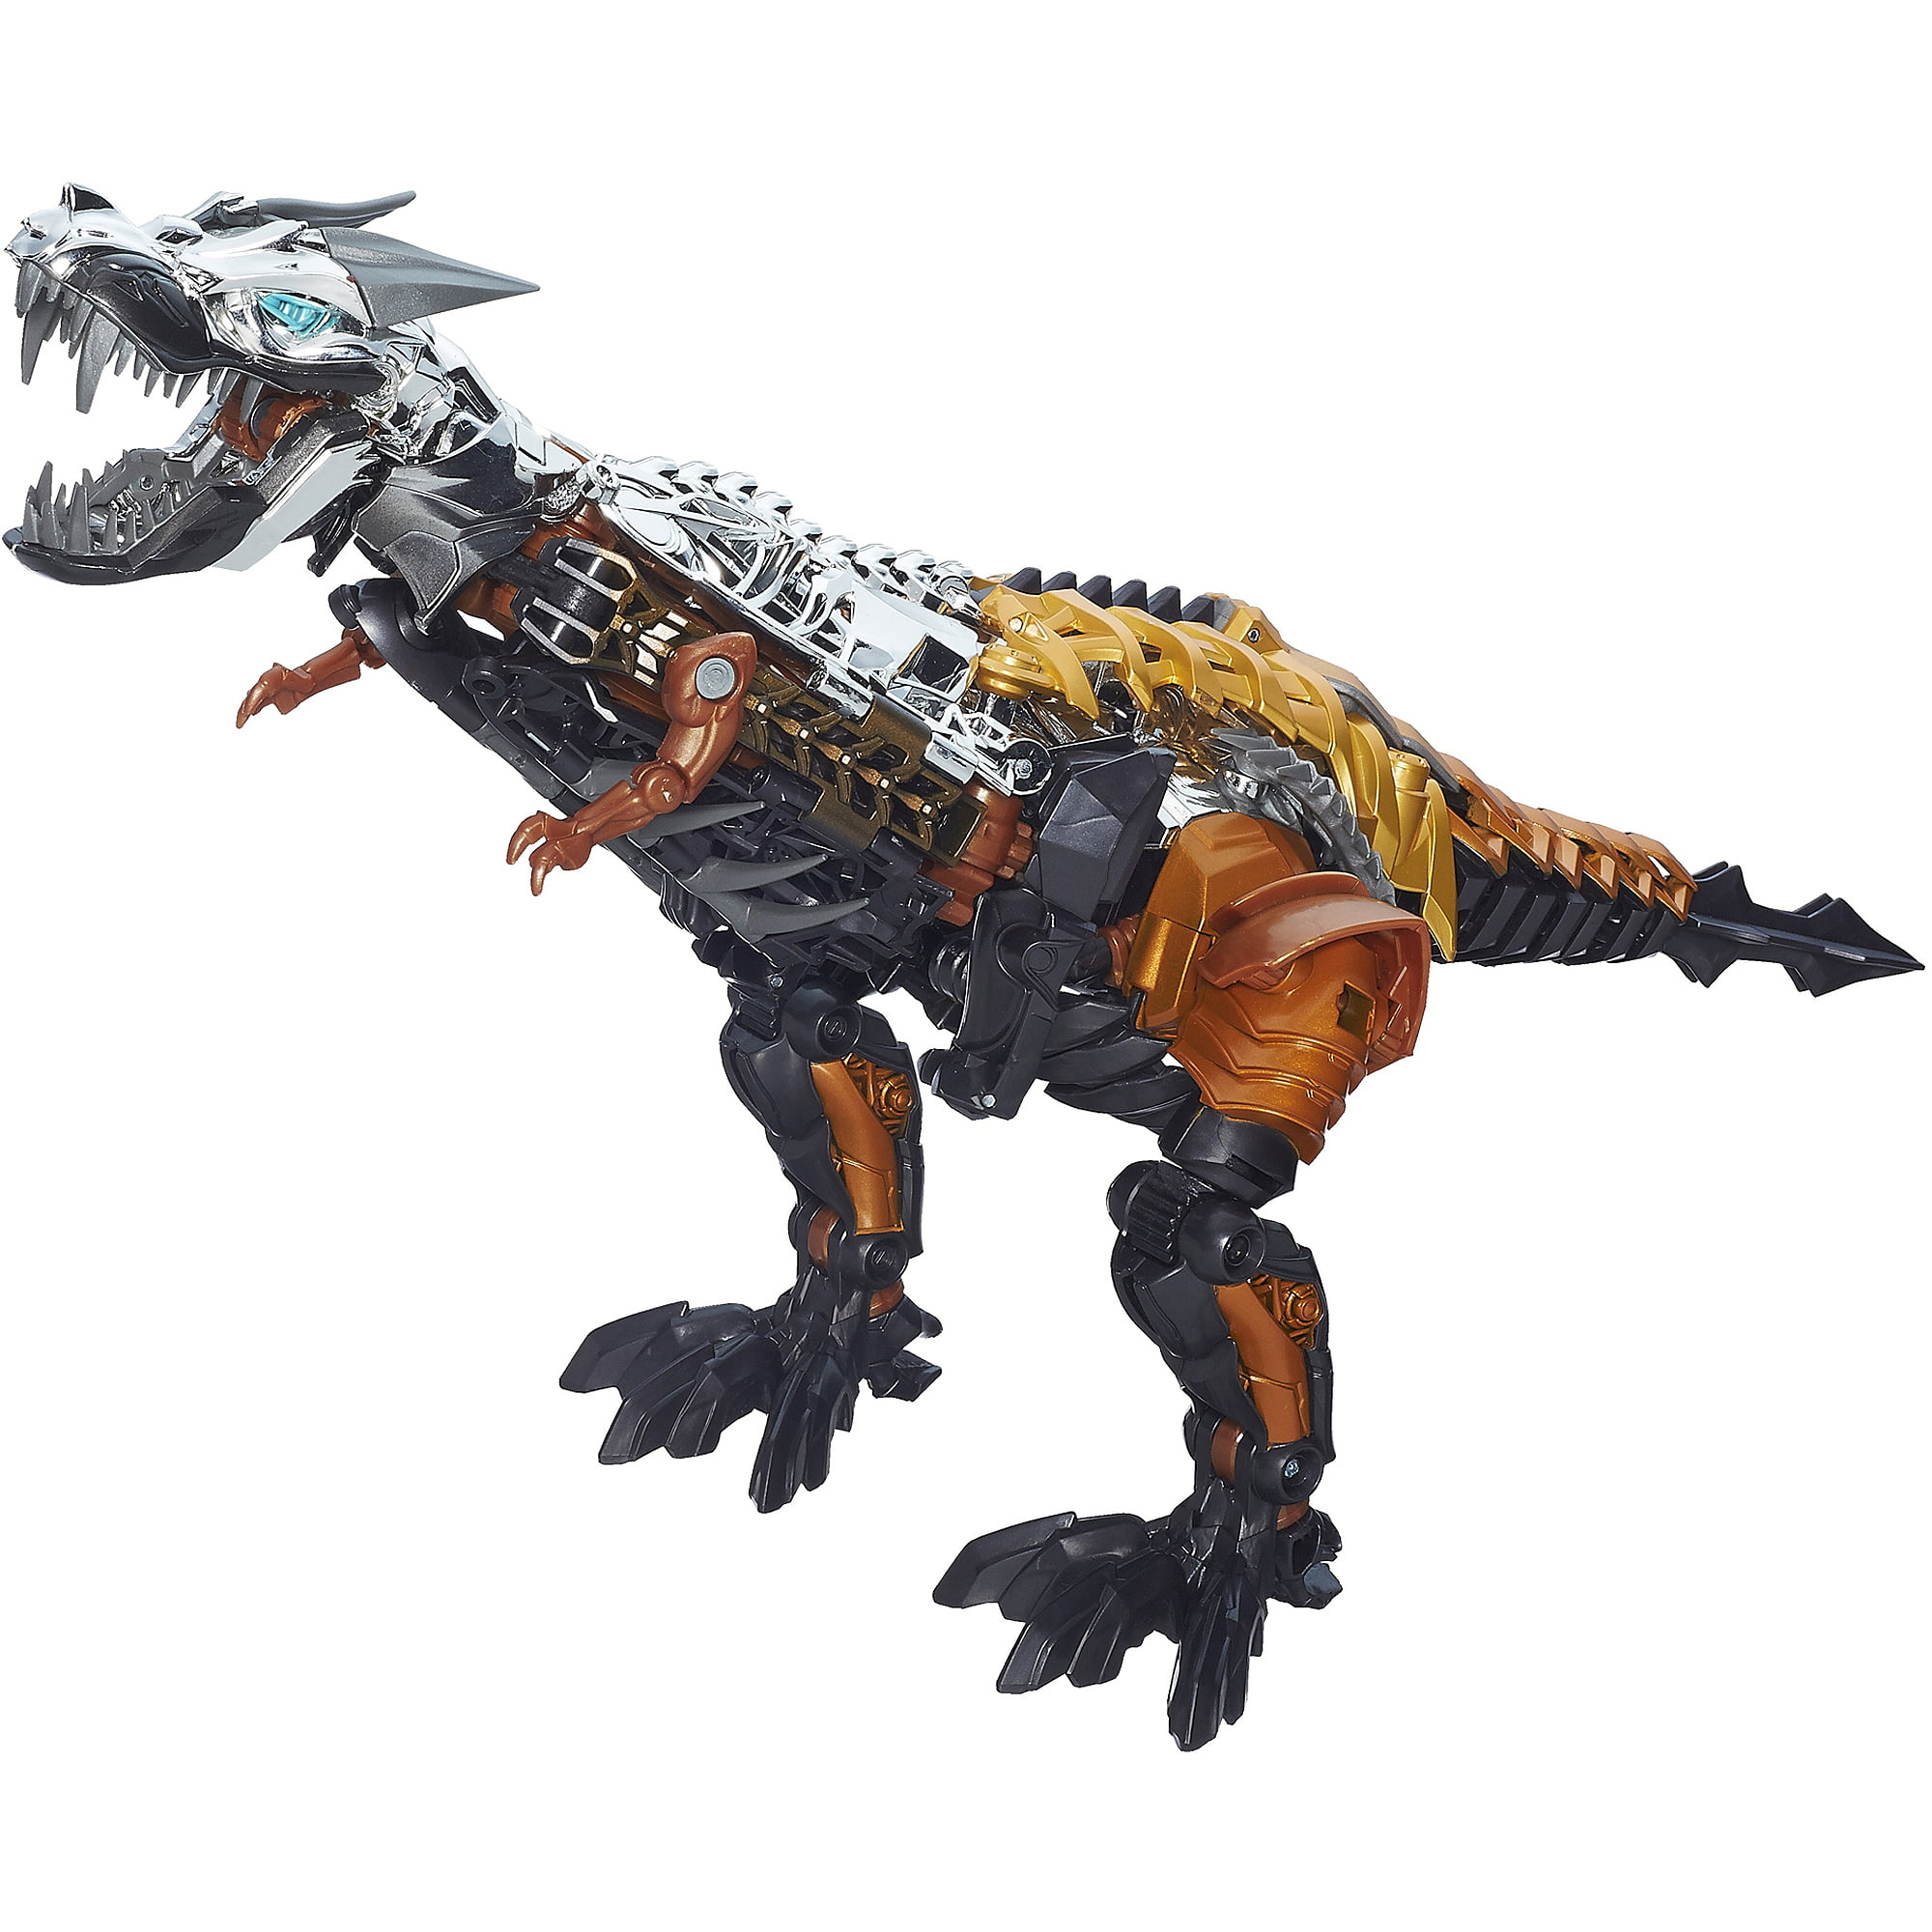 Transformers Age of Extinction Generations Leader Class, Grimlock by Hasbro, Inc.